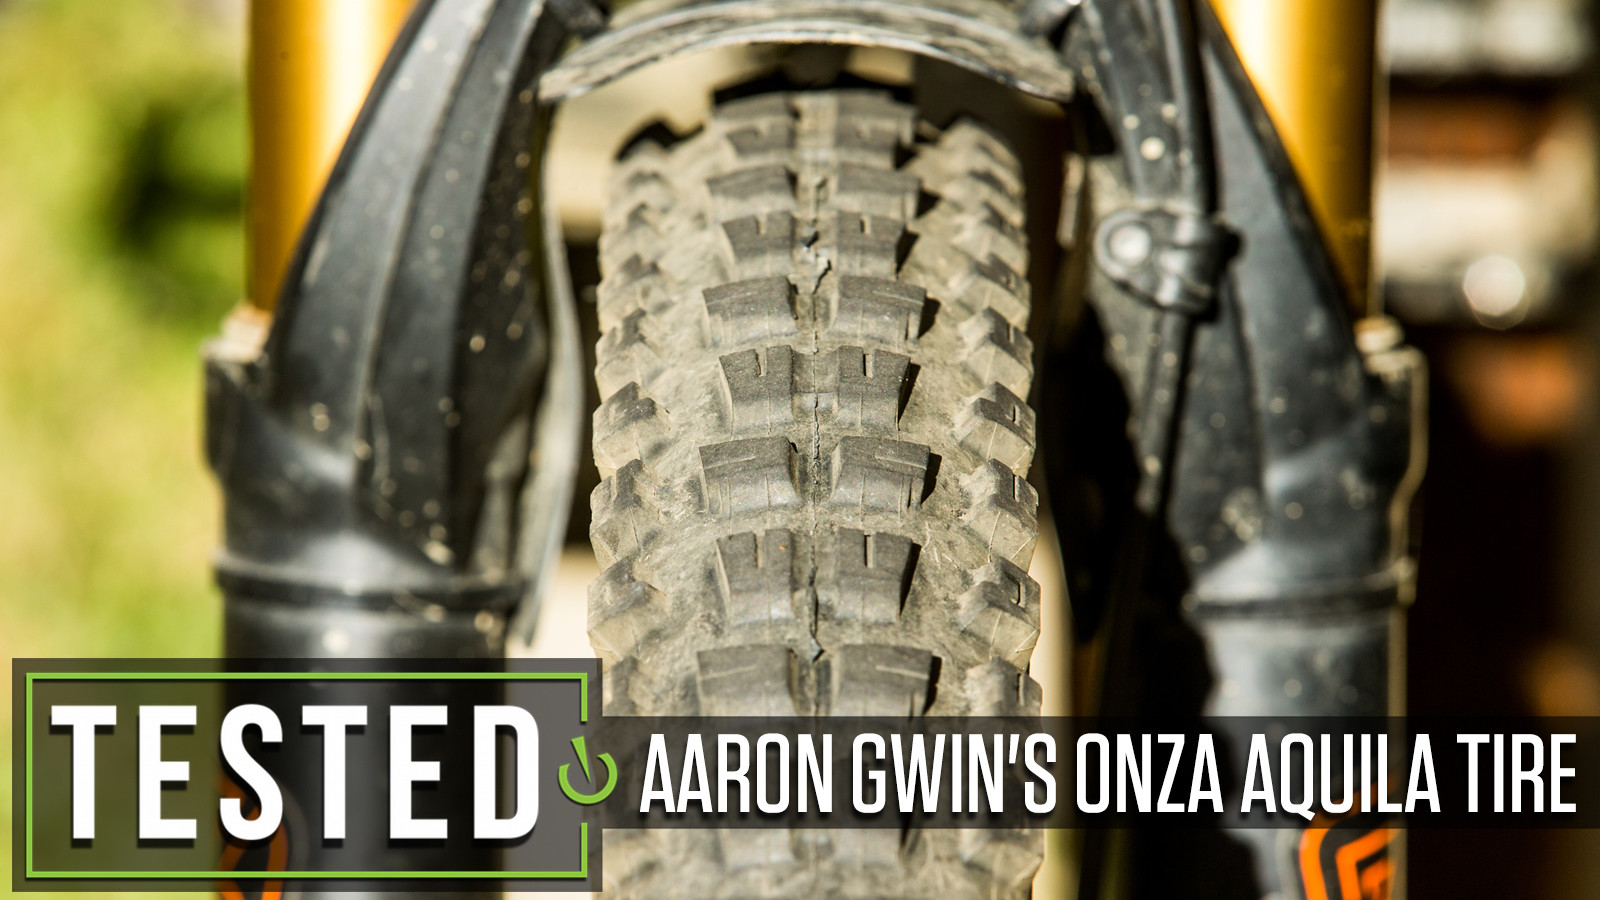 Tested: Aaron Gwin's Signature Series Onza Aquila Tire